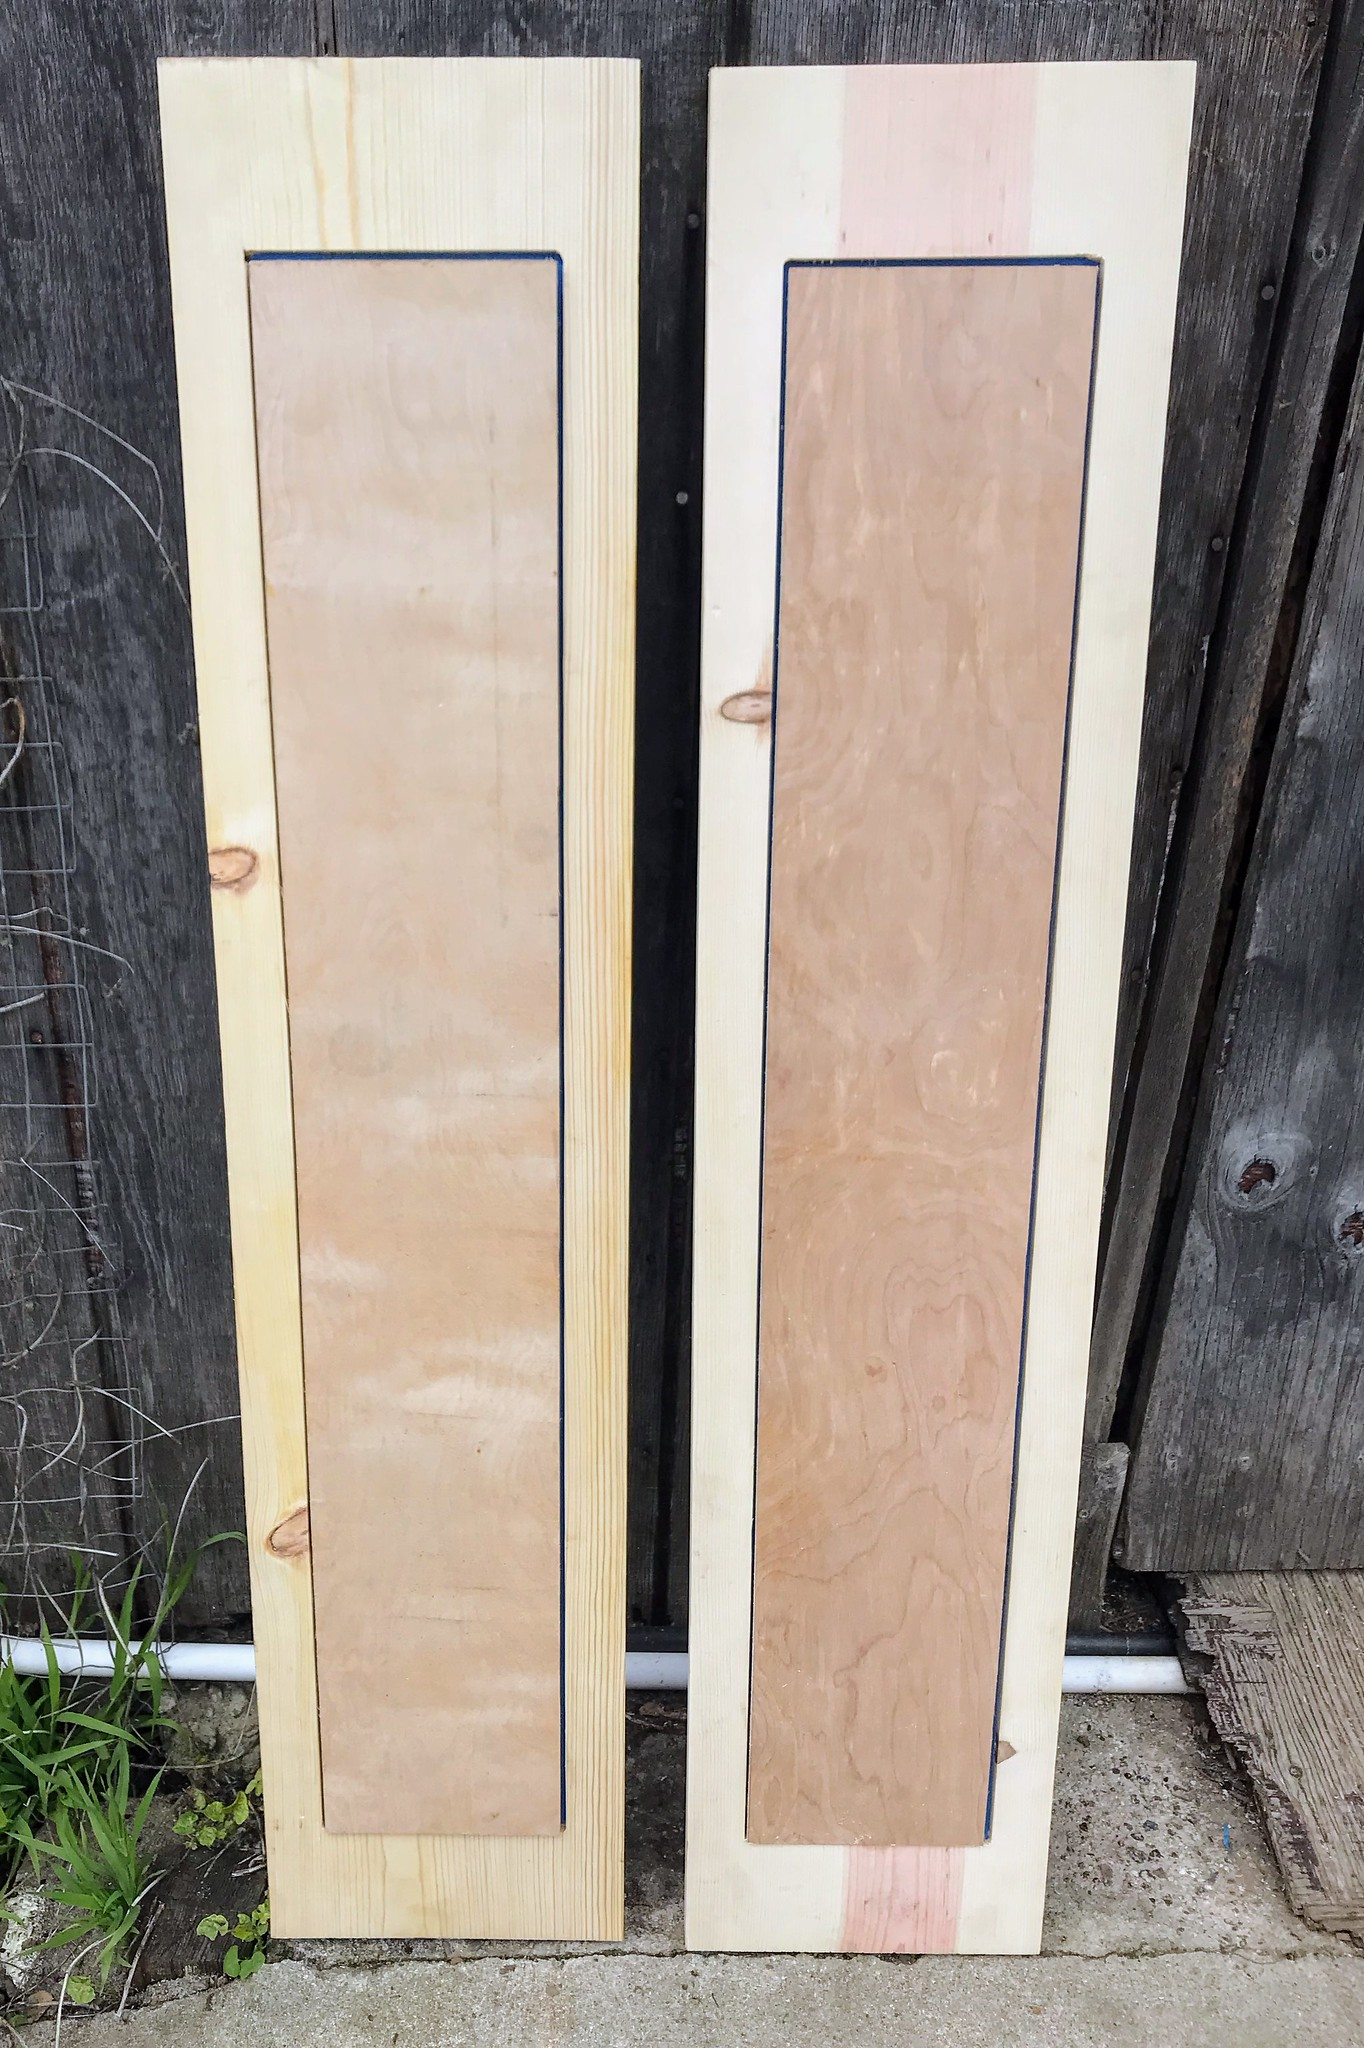 Dry fitting the observation window shutters